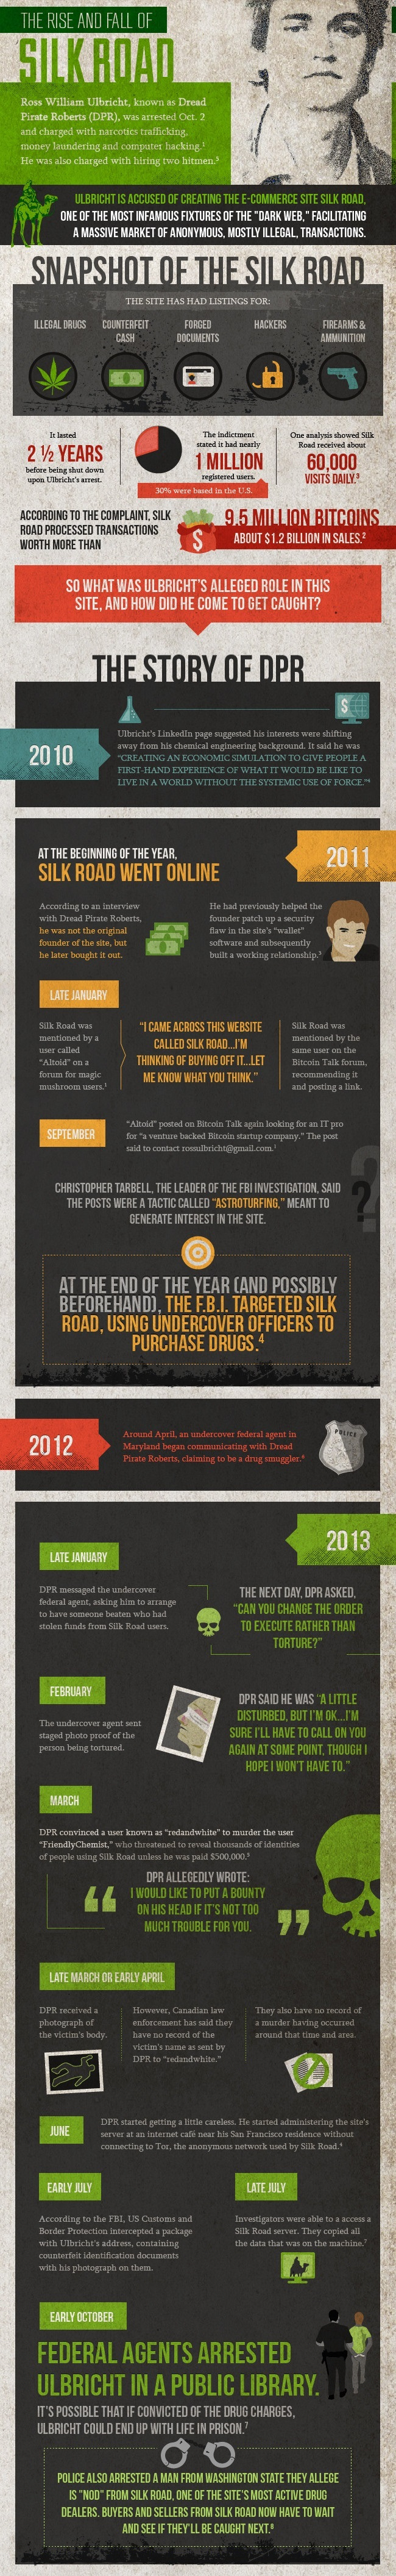 The Rise and Fall of Silk Road